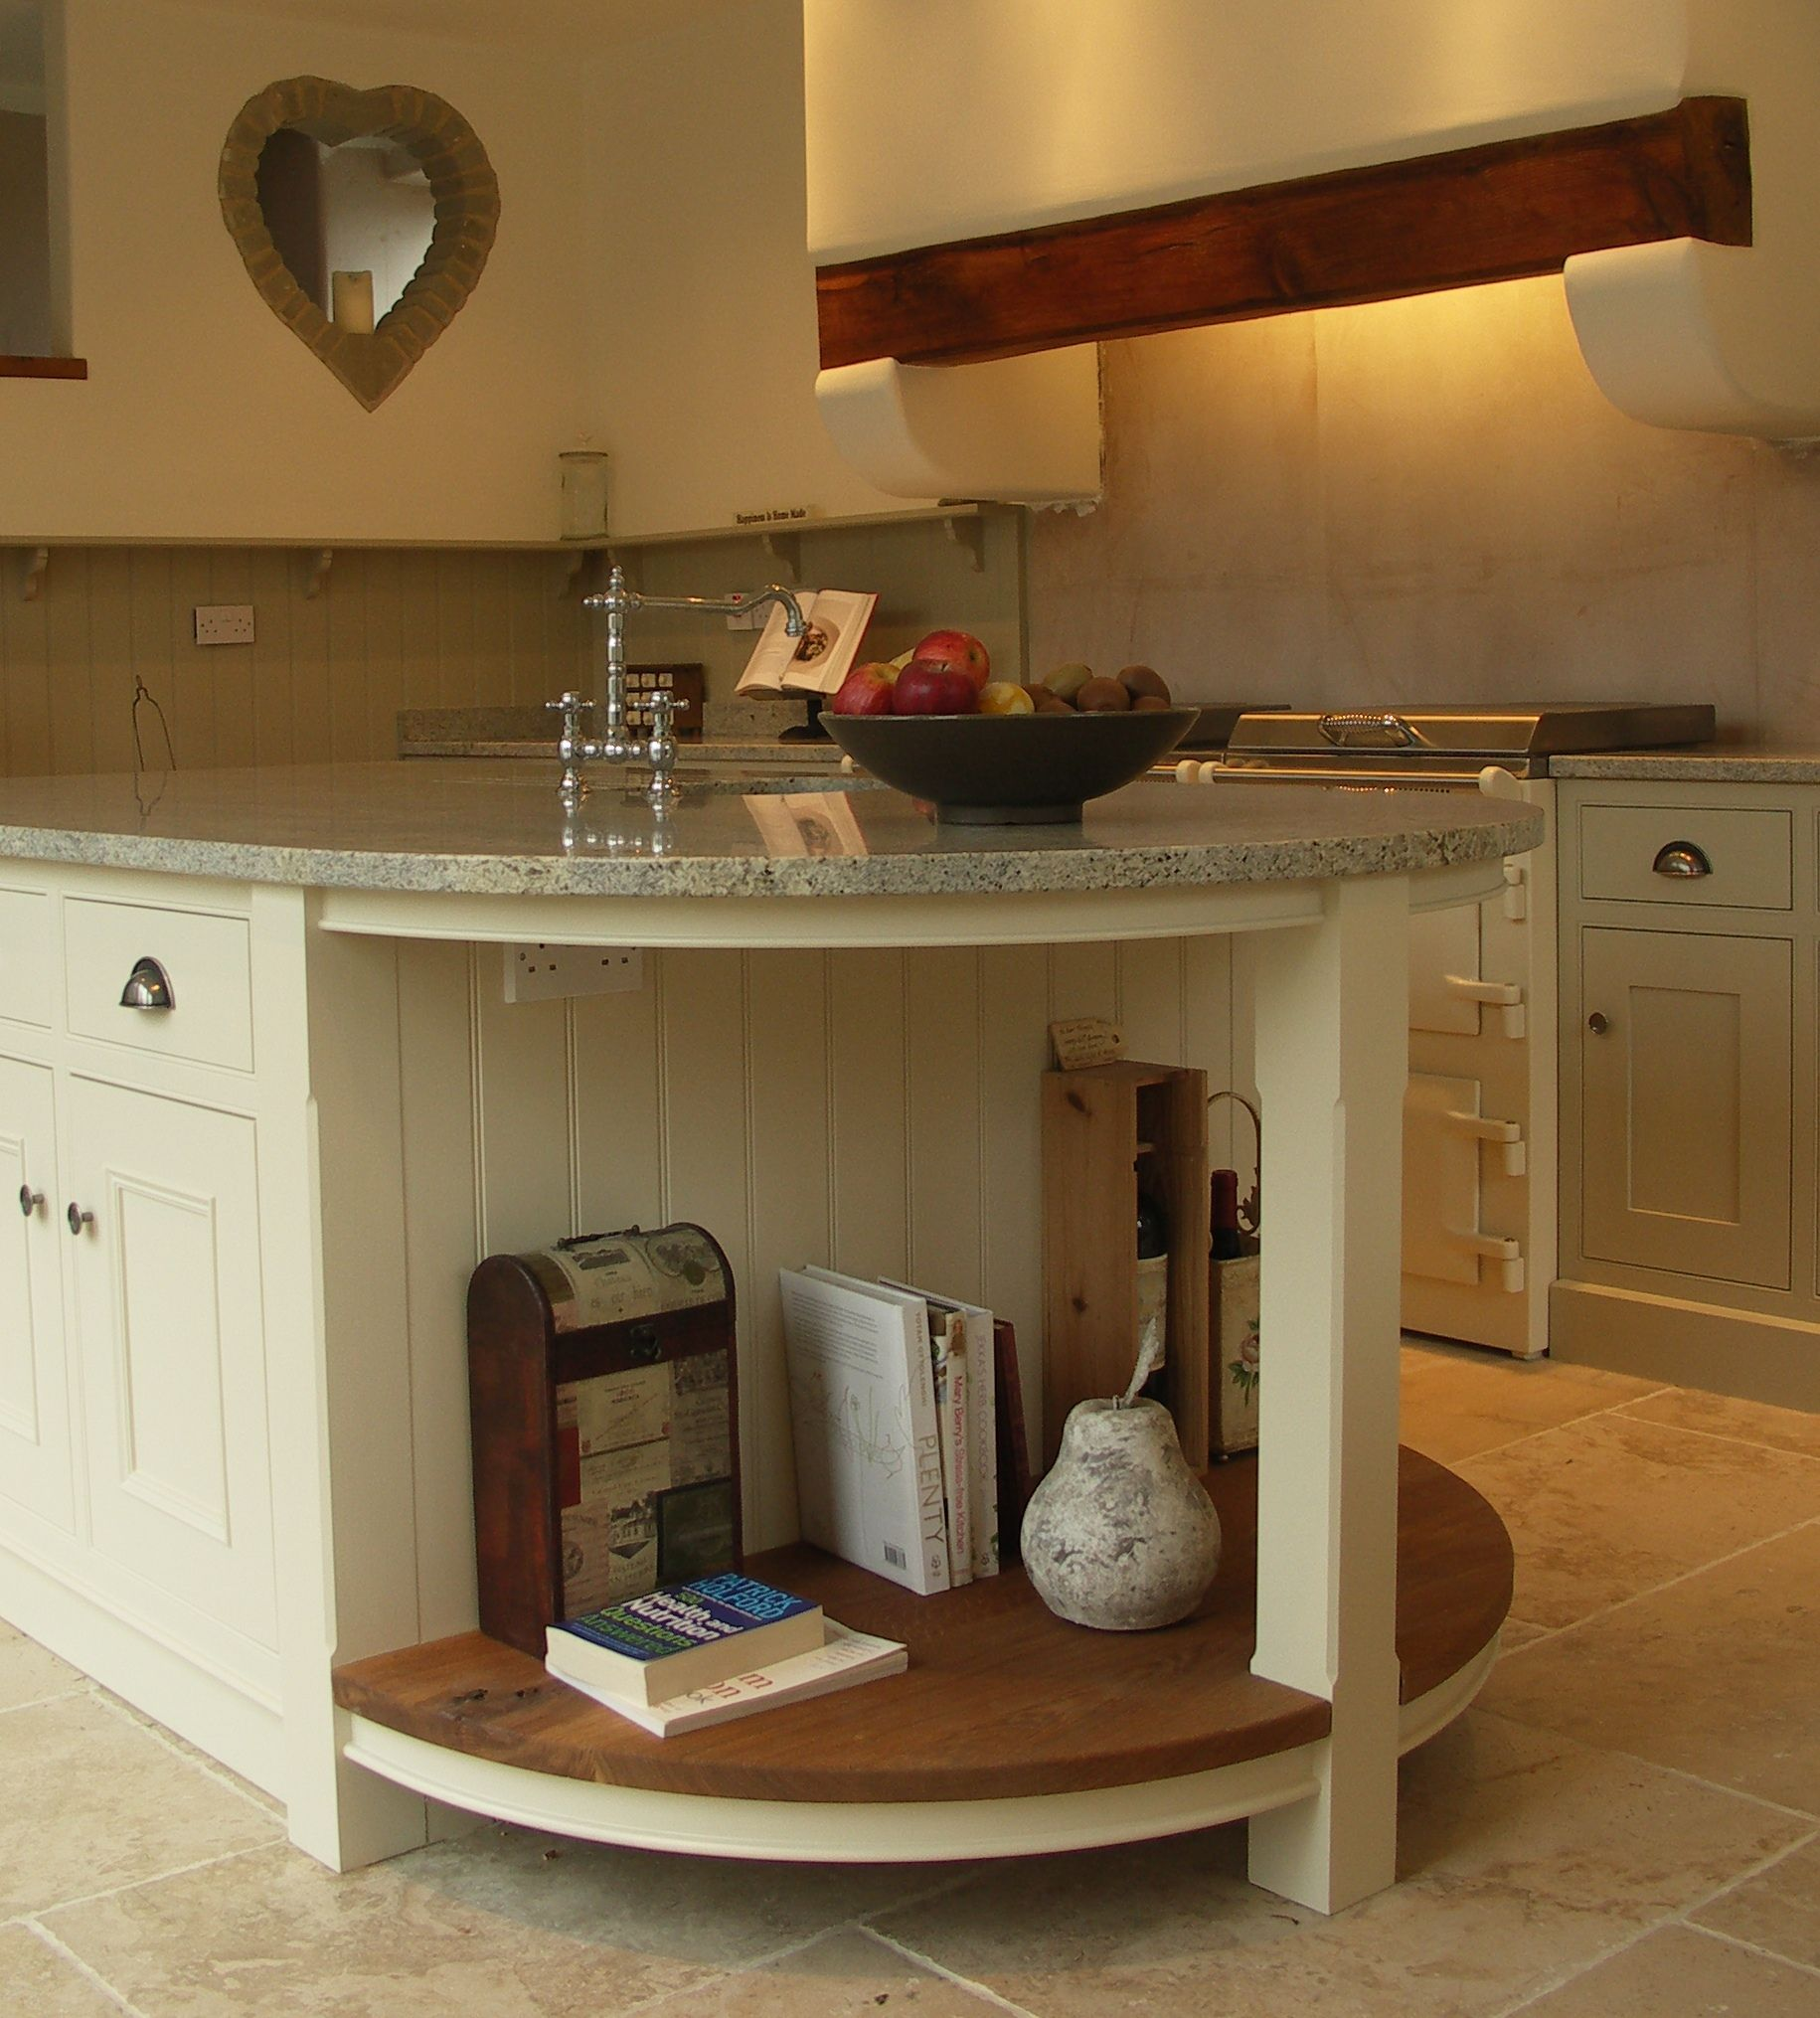 Sandblasted English Oak Island Shelving To Compliment The Painted Cabinetry Cocinas